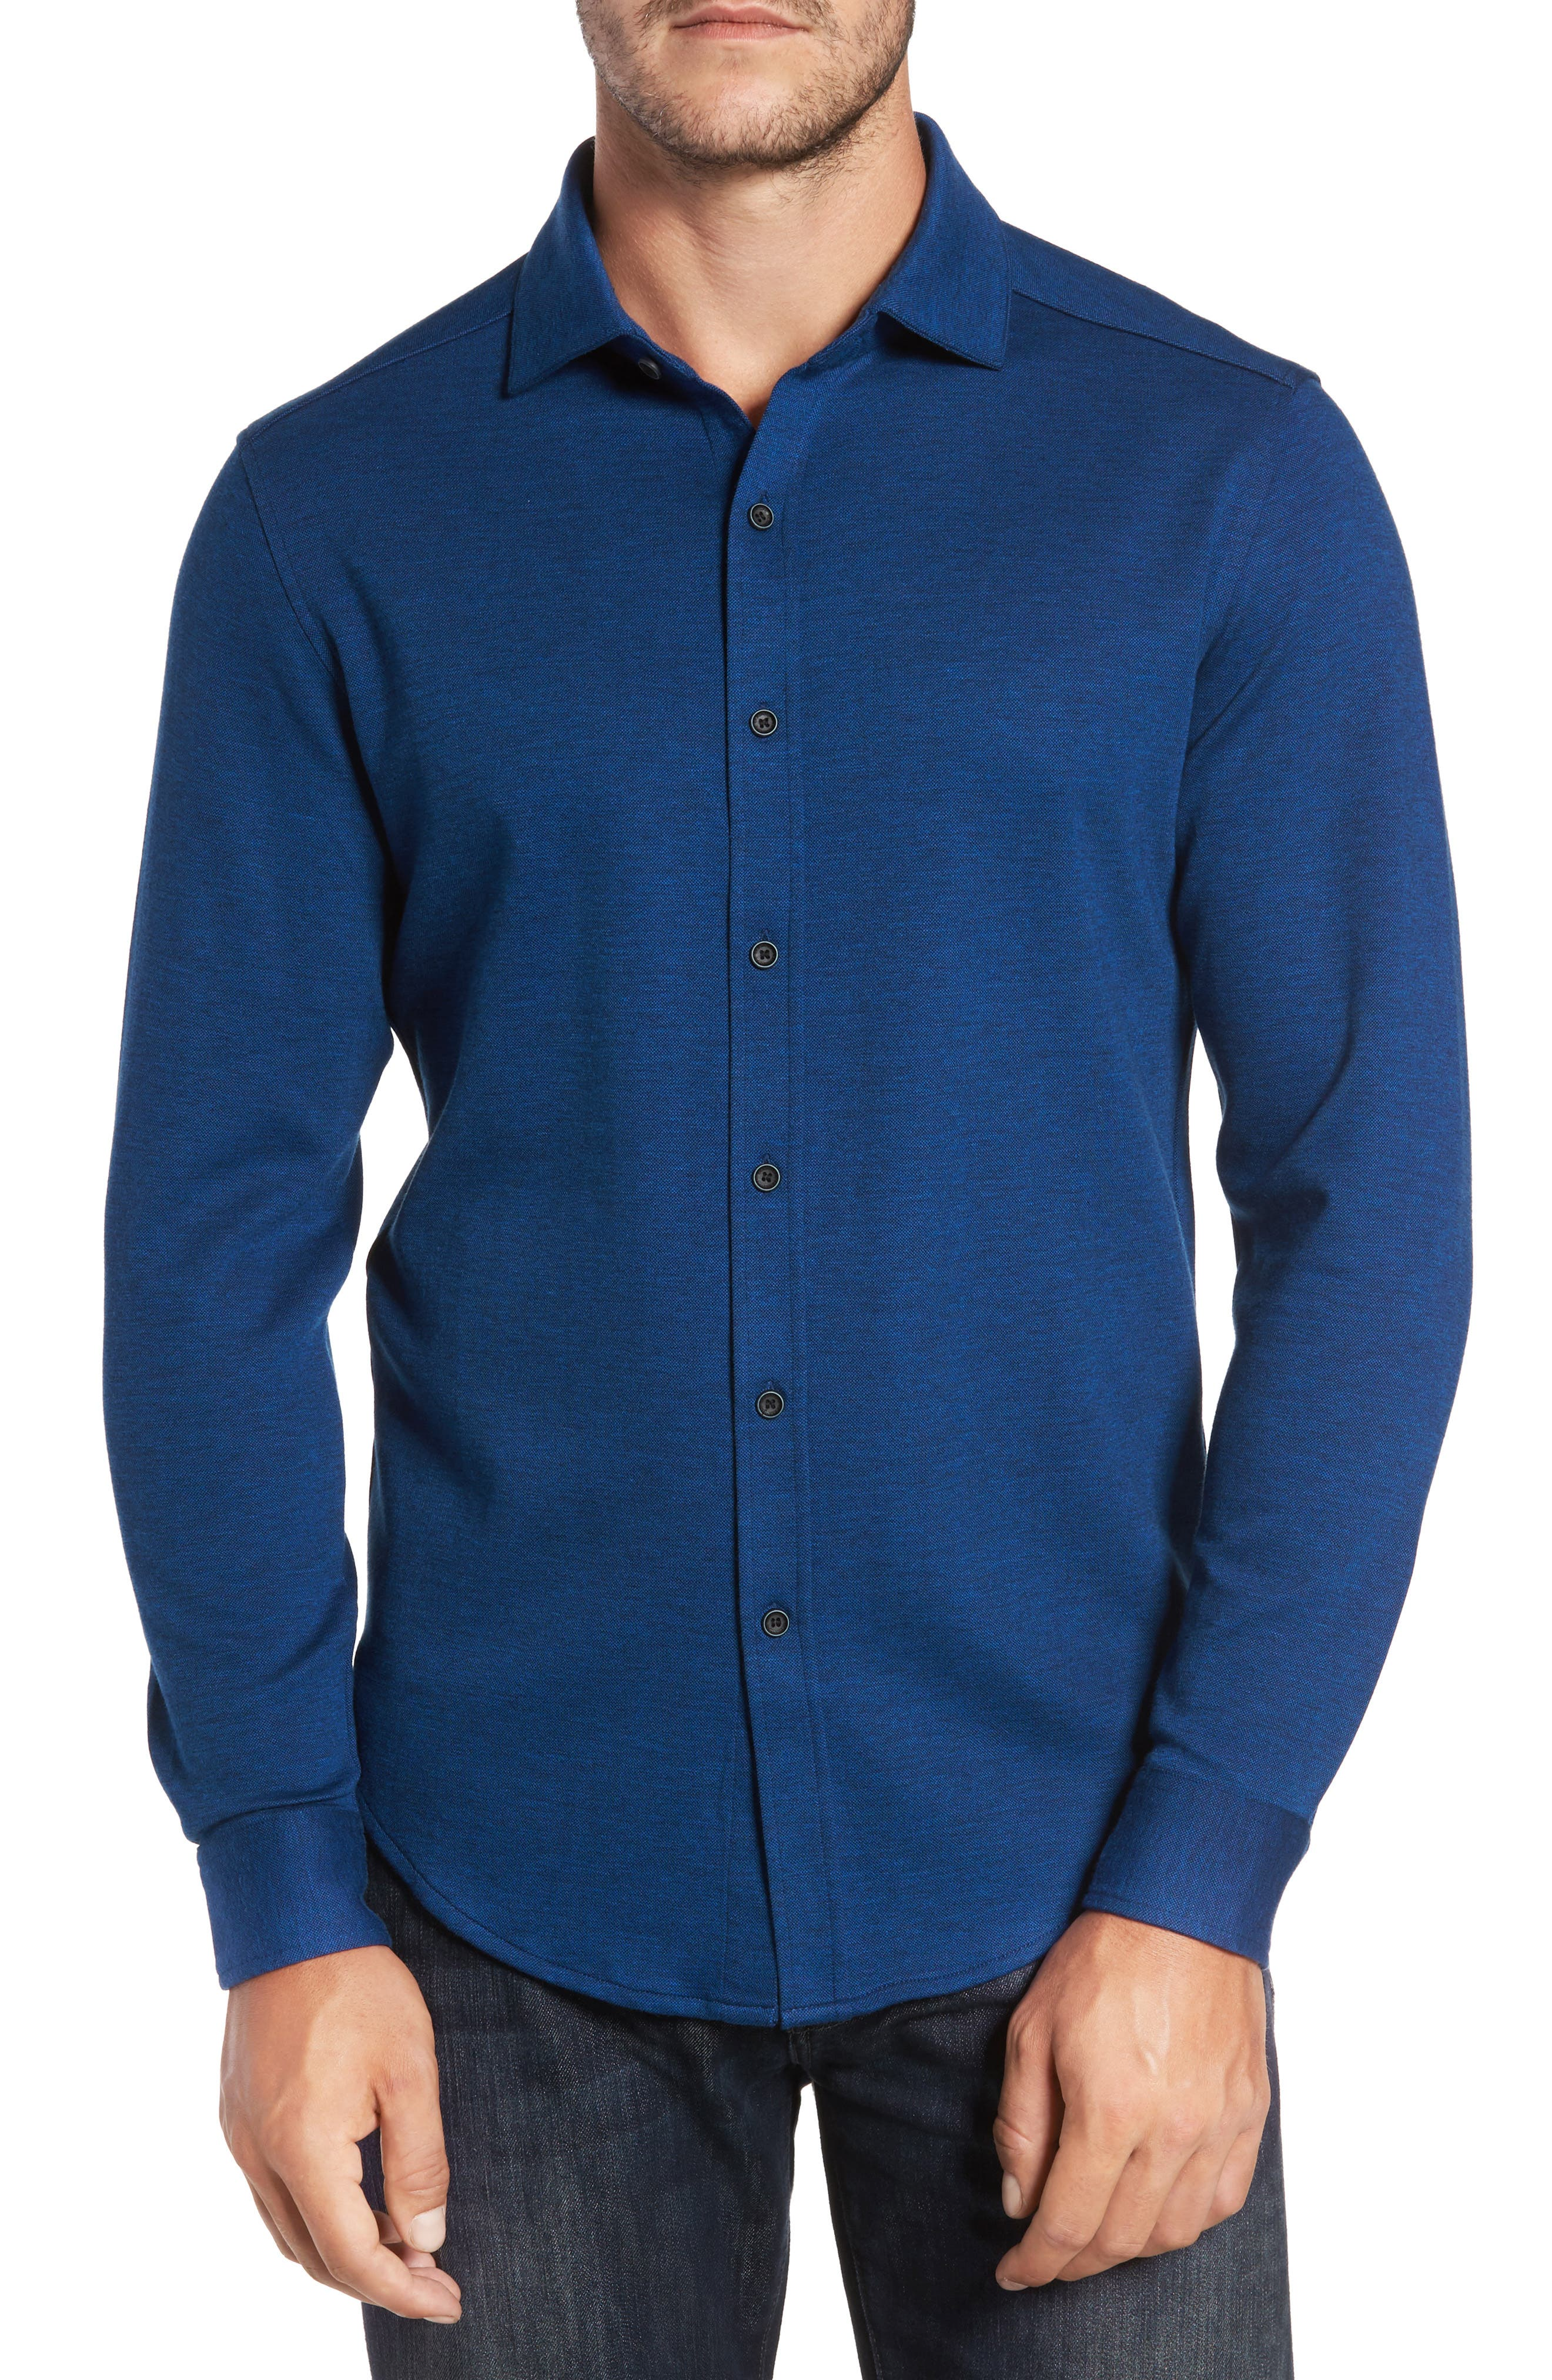 Alternate Image 1 Selected - Bugatchi Trim Fit Heathered Knit Sport Shirt